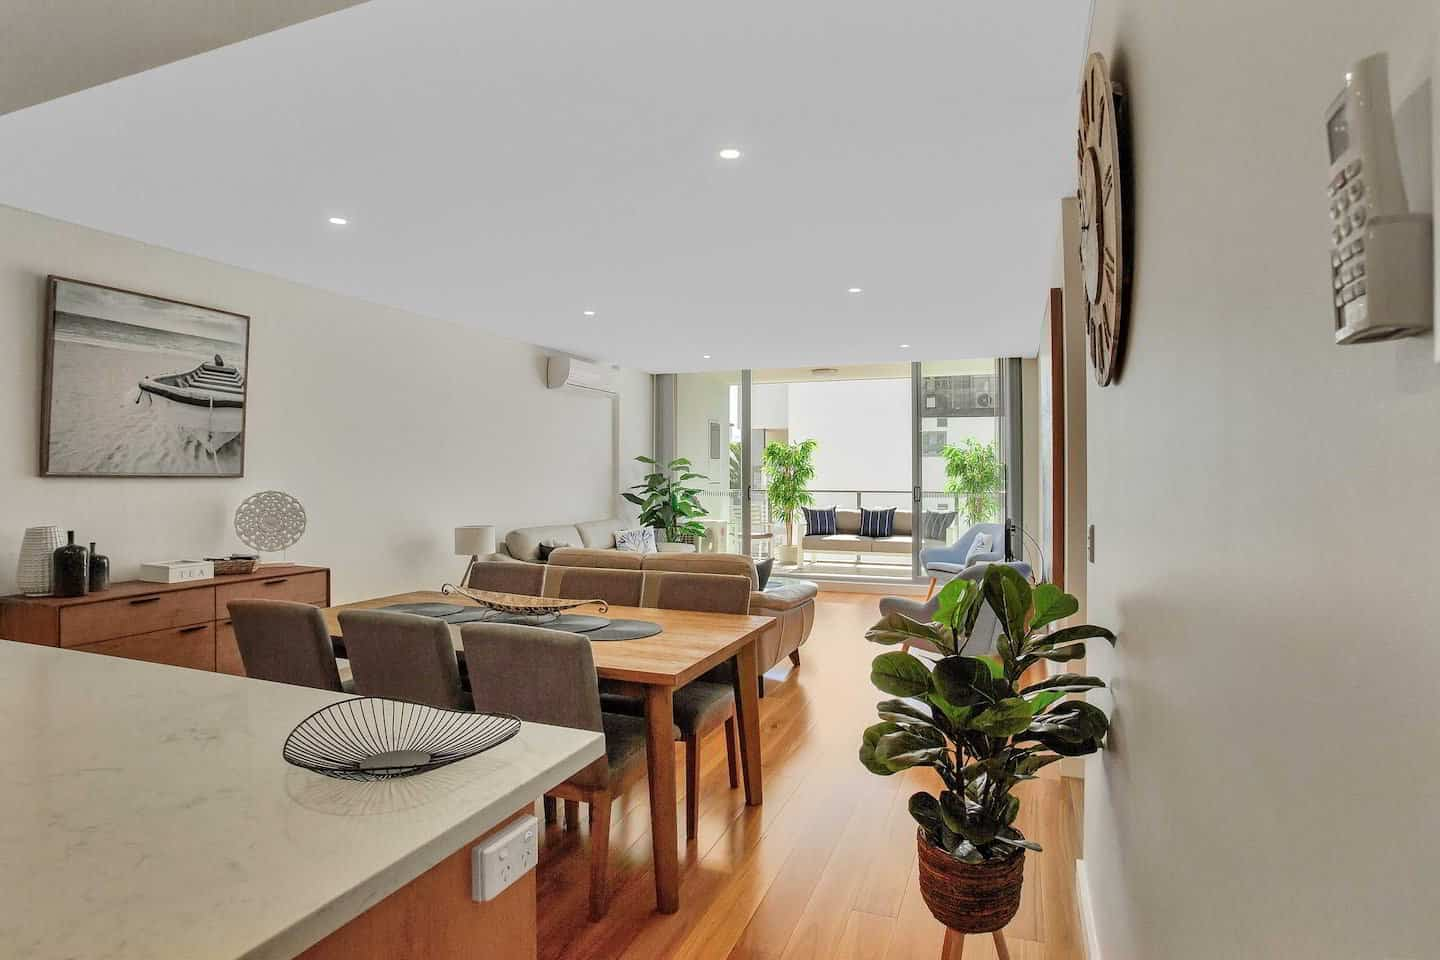 Photo of a top airbnb terrigal titled: Beach, Ice Cream and Cafes on every corner ! relevant to terrigal holiday rental accomodation